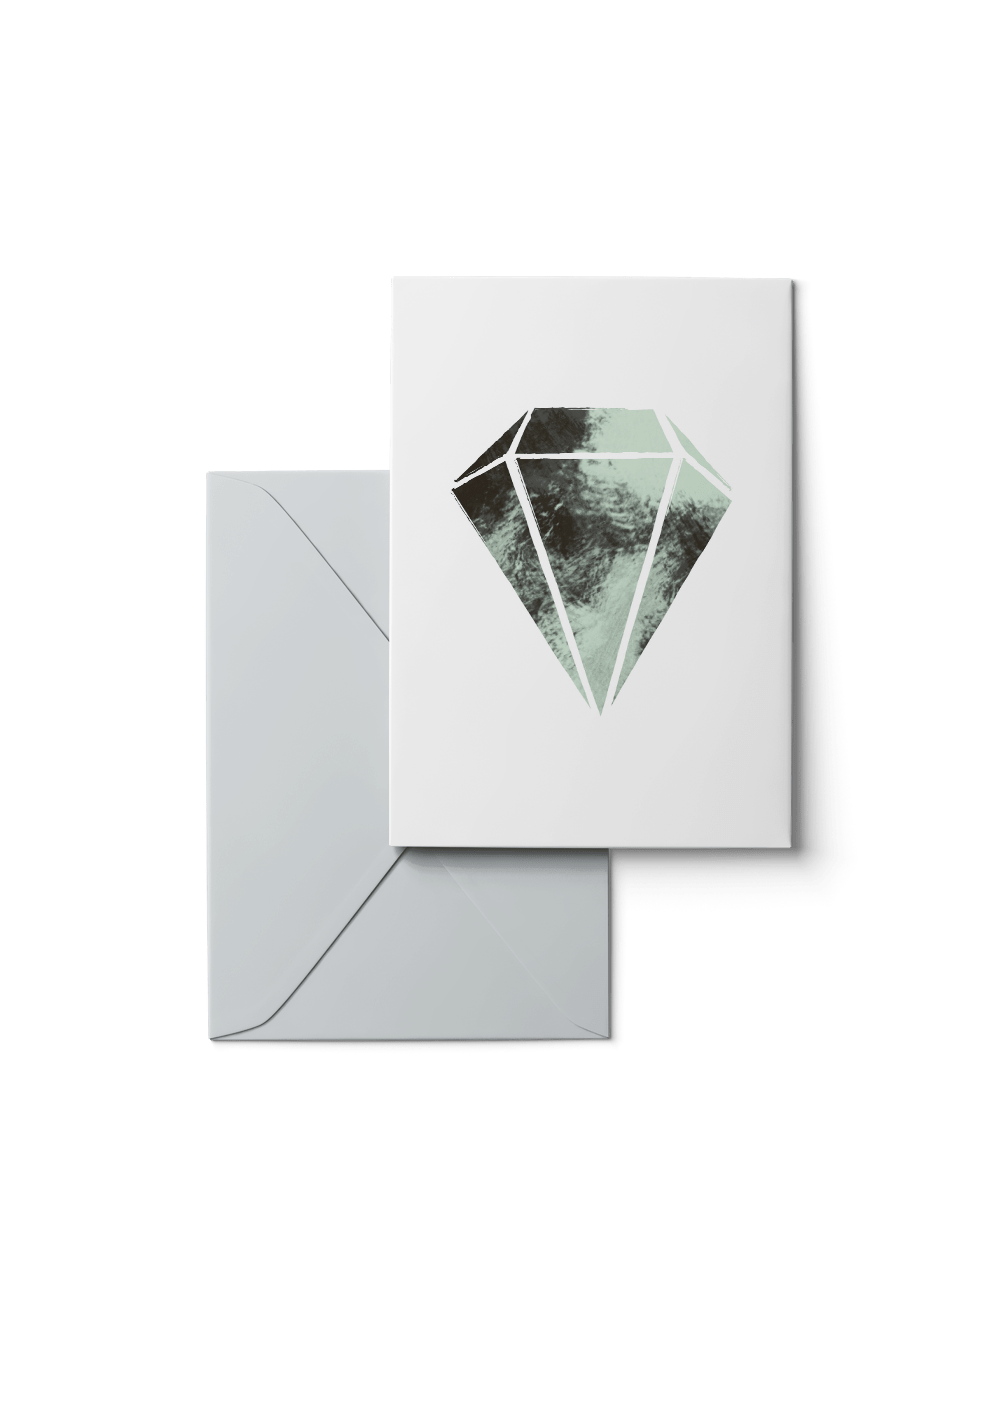 Can't Buy Me Love, Onyx, Grußkarte, 6 Karten by Karten Design Fabrik. Supplier of designer Greeting Cards, Gift Wrap, Christmas Cards & Invitations to leading design stores including Connox, Modulor, Magazin & Manufactum.